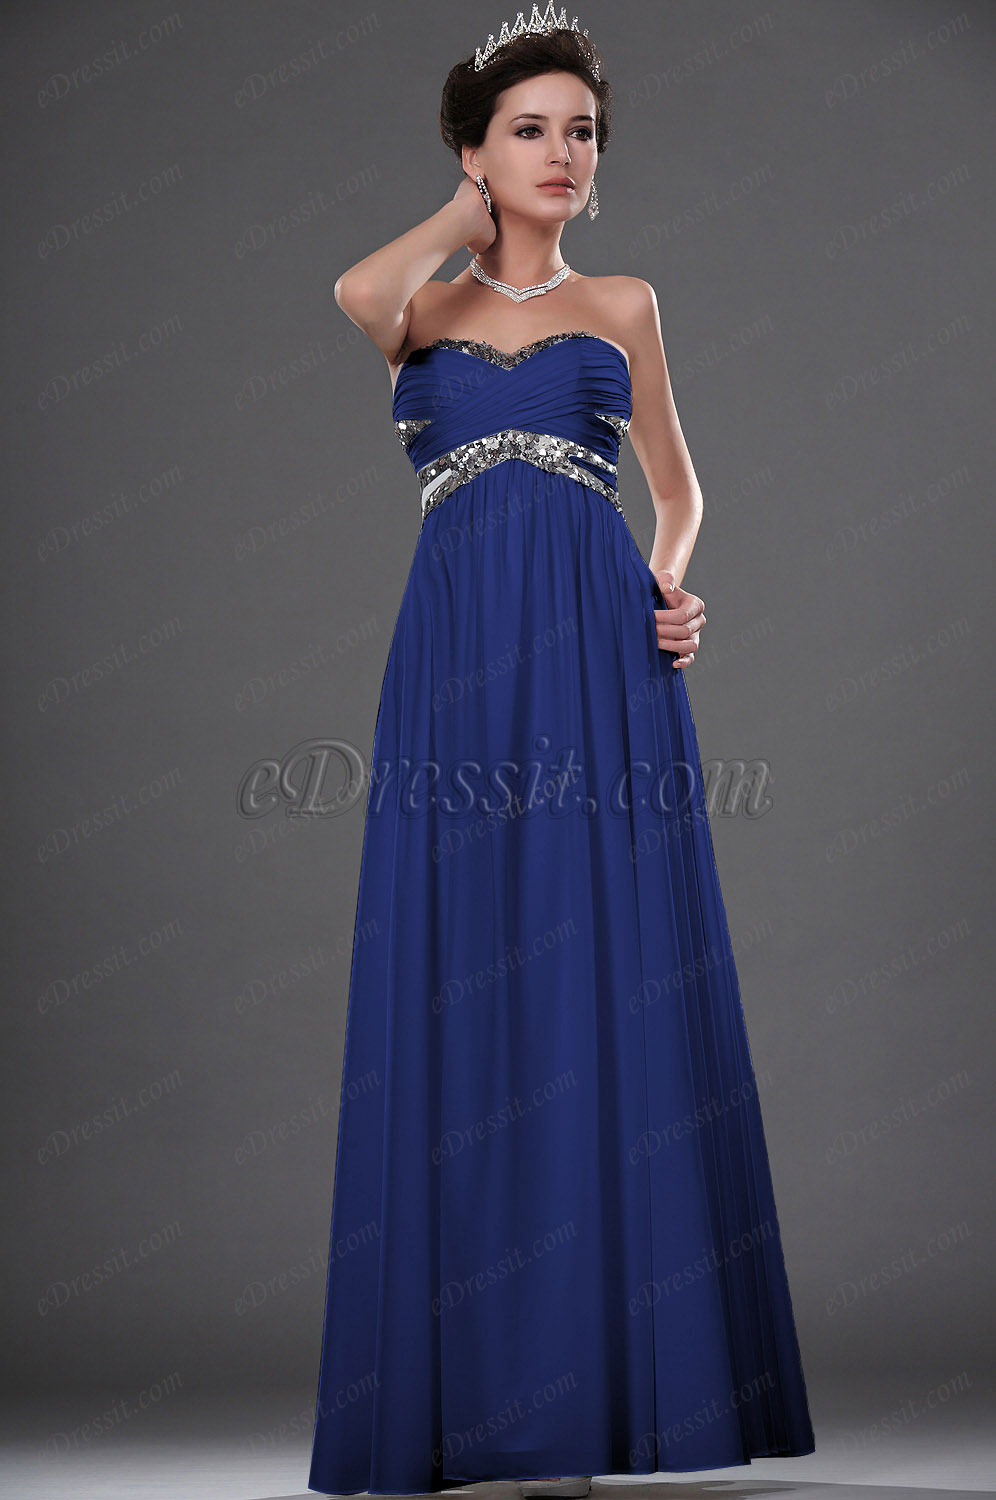 Clearance Sale ! eDressit Silver Sequin Blue Evening Dress--Size UK12 (01111607b)